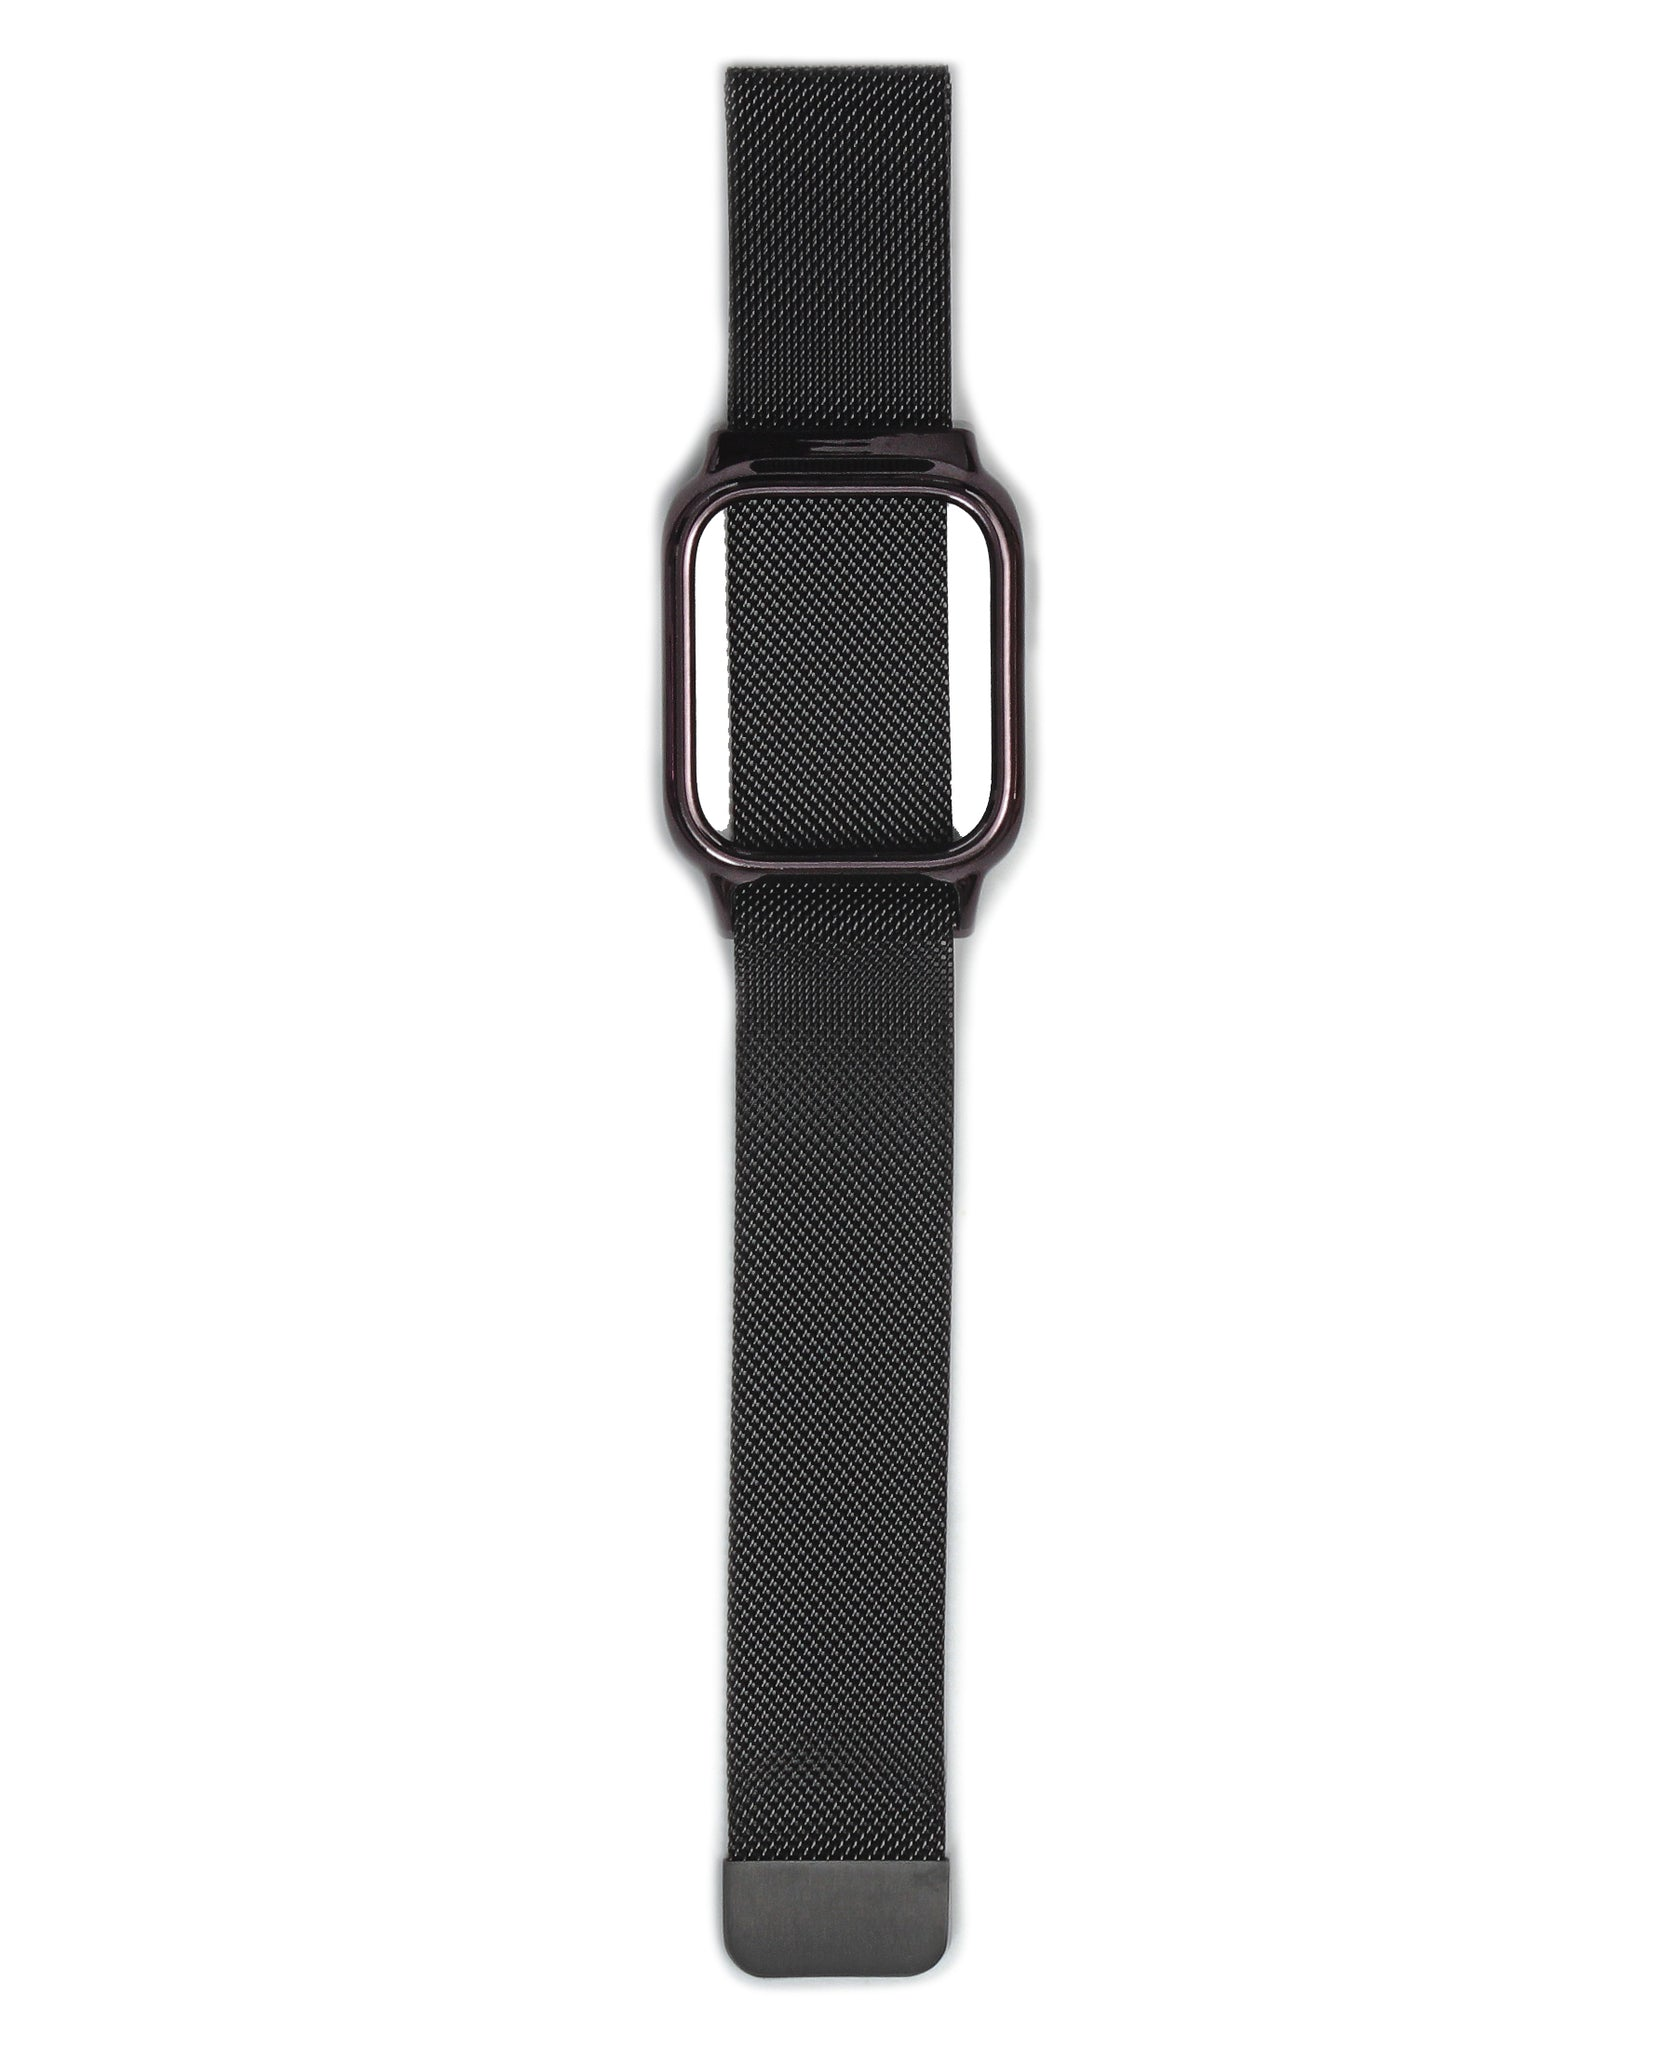 40mm Apple Watch Band With Cover - Black